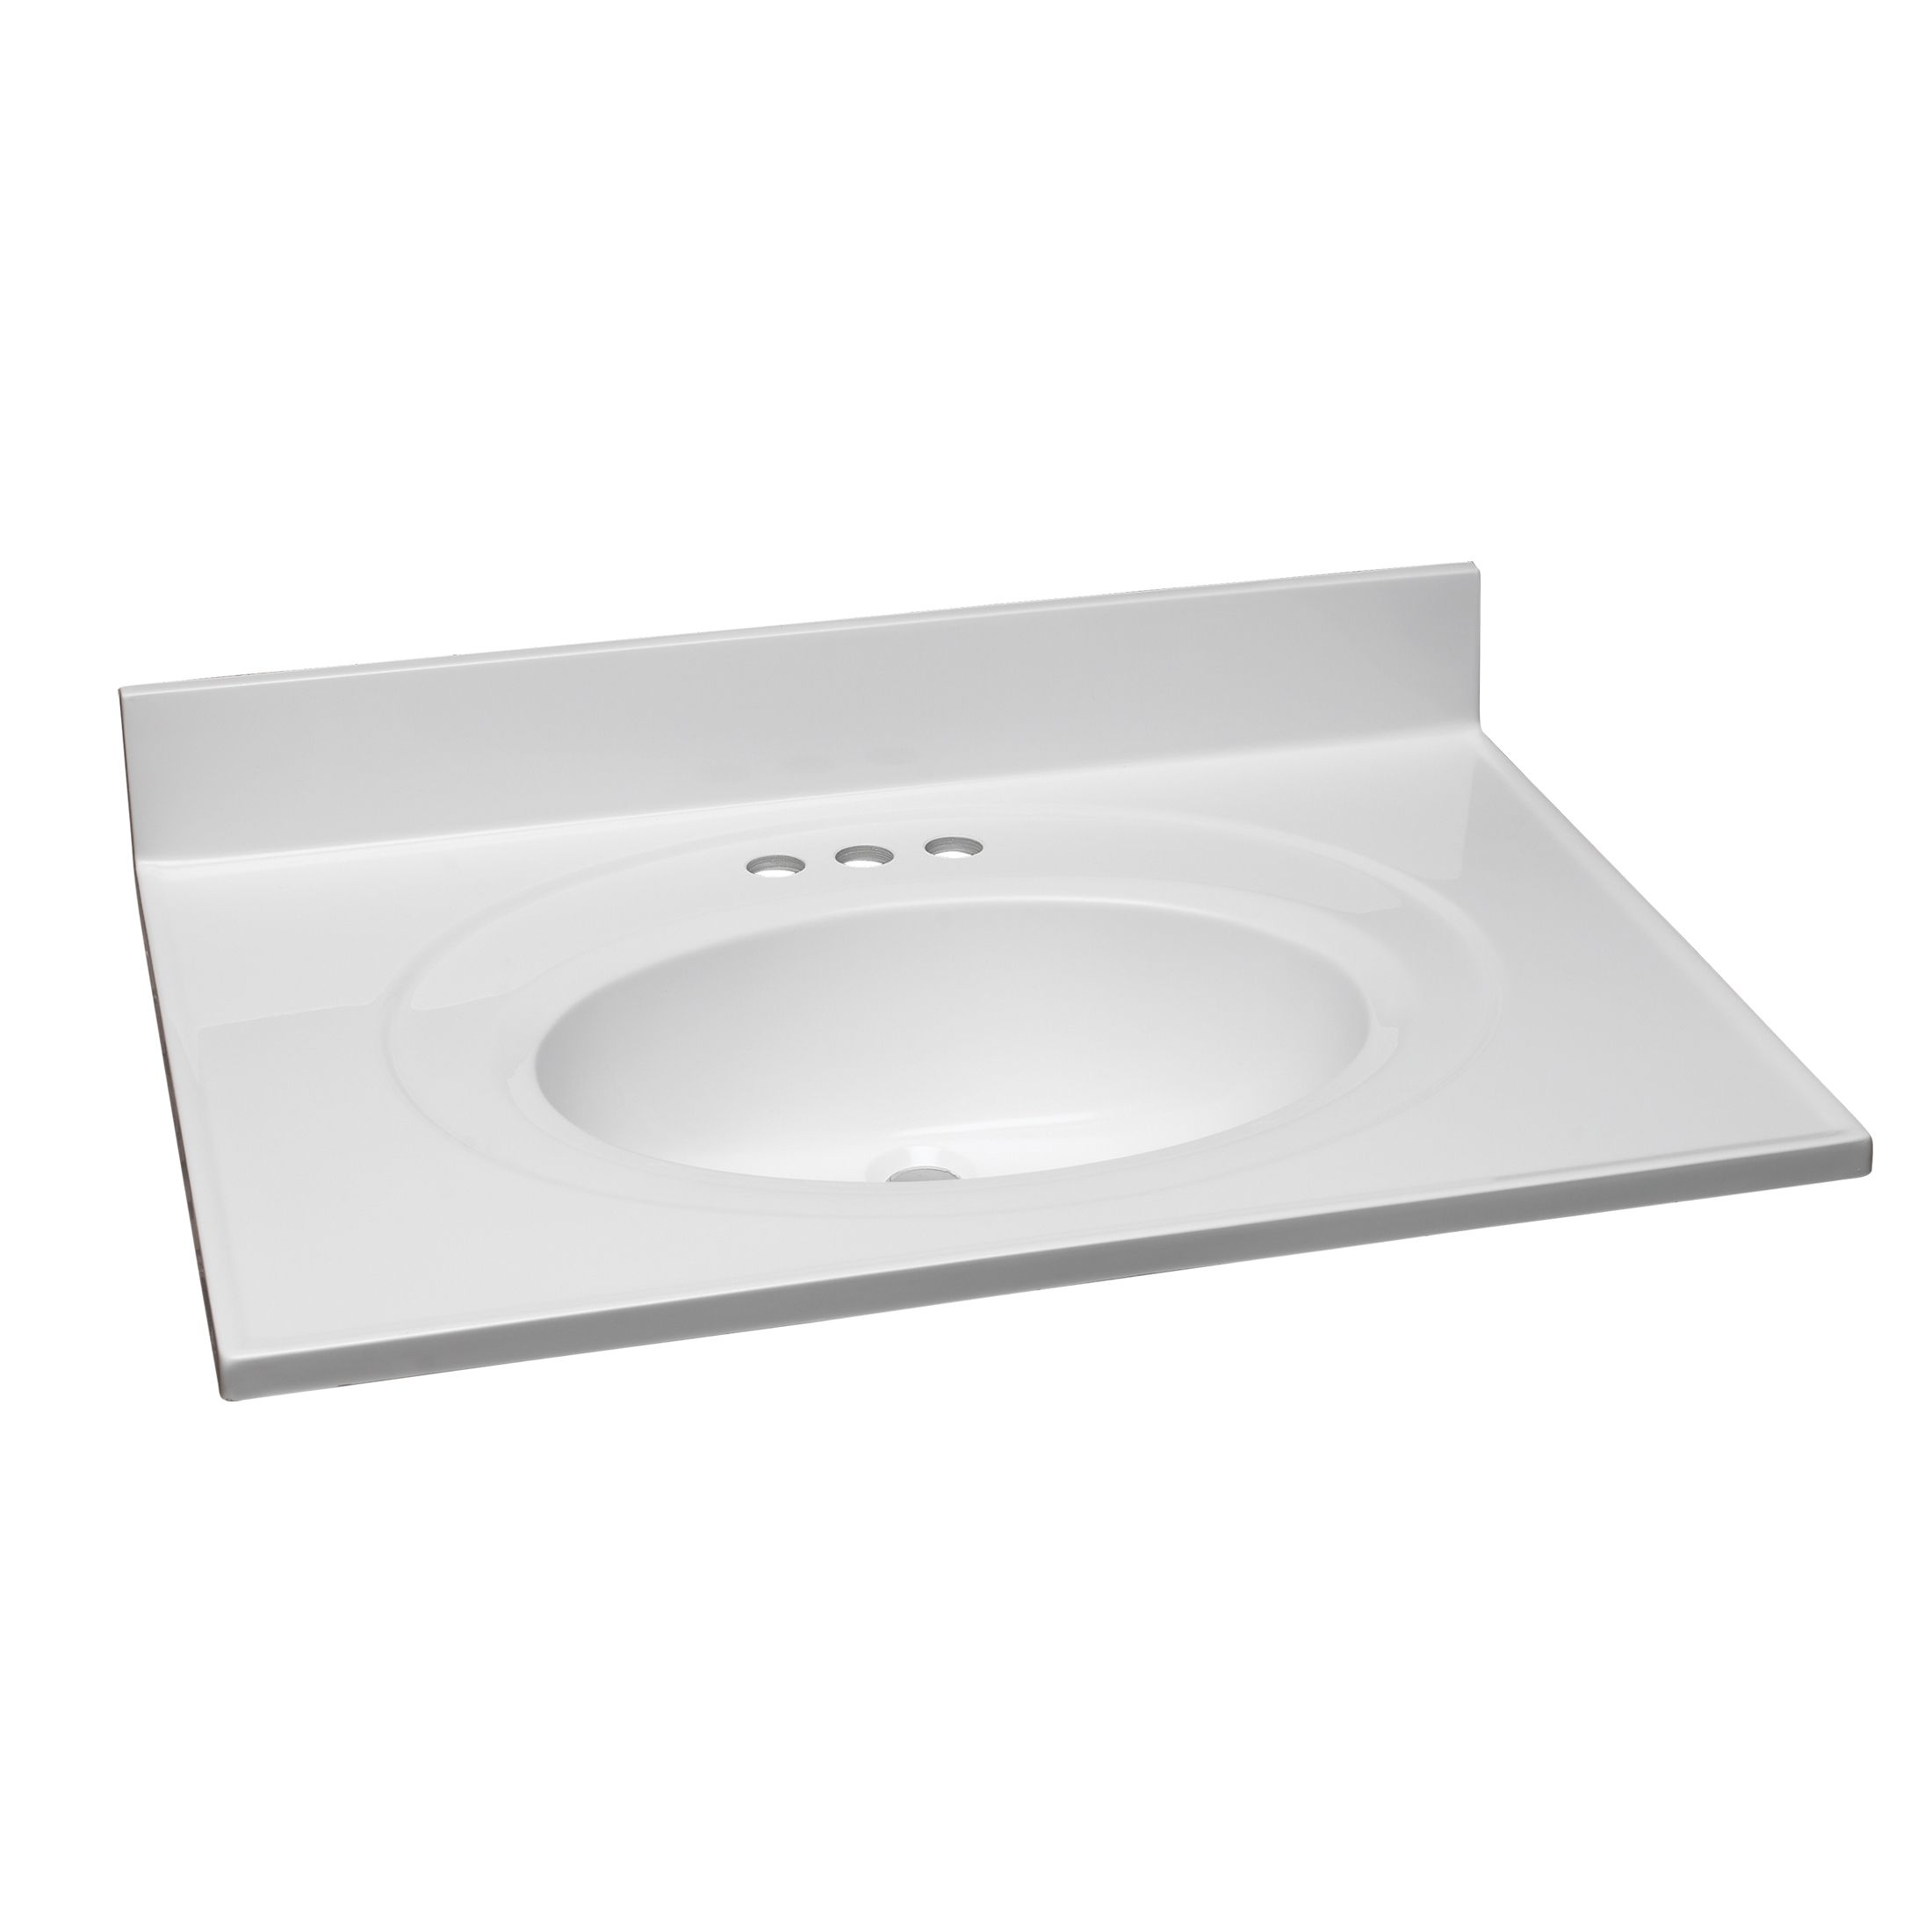 31-Inch by 22-Inch Marble Vanity Top/Single Bowl, Solid White #551374